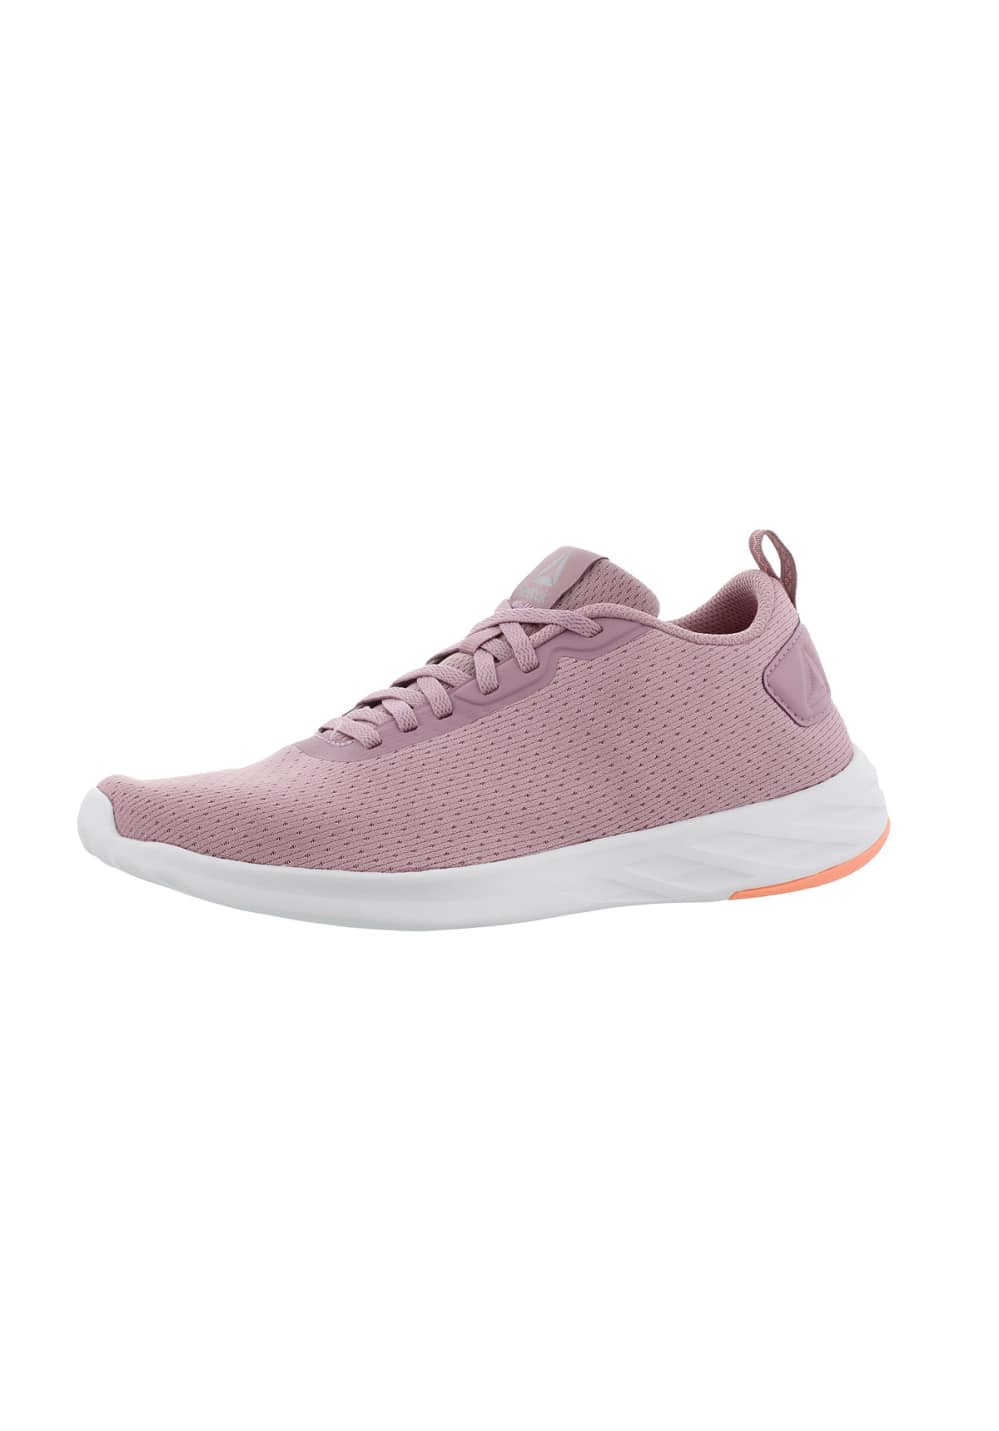 87758304cabb64 Home · Shop · Reebok REEBOK ASTRORIDE SOUL - Walking shoes for Women - Pink.  Back to Overview. 1  2  3  4  5. Previous